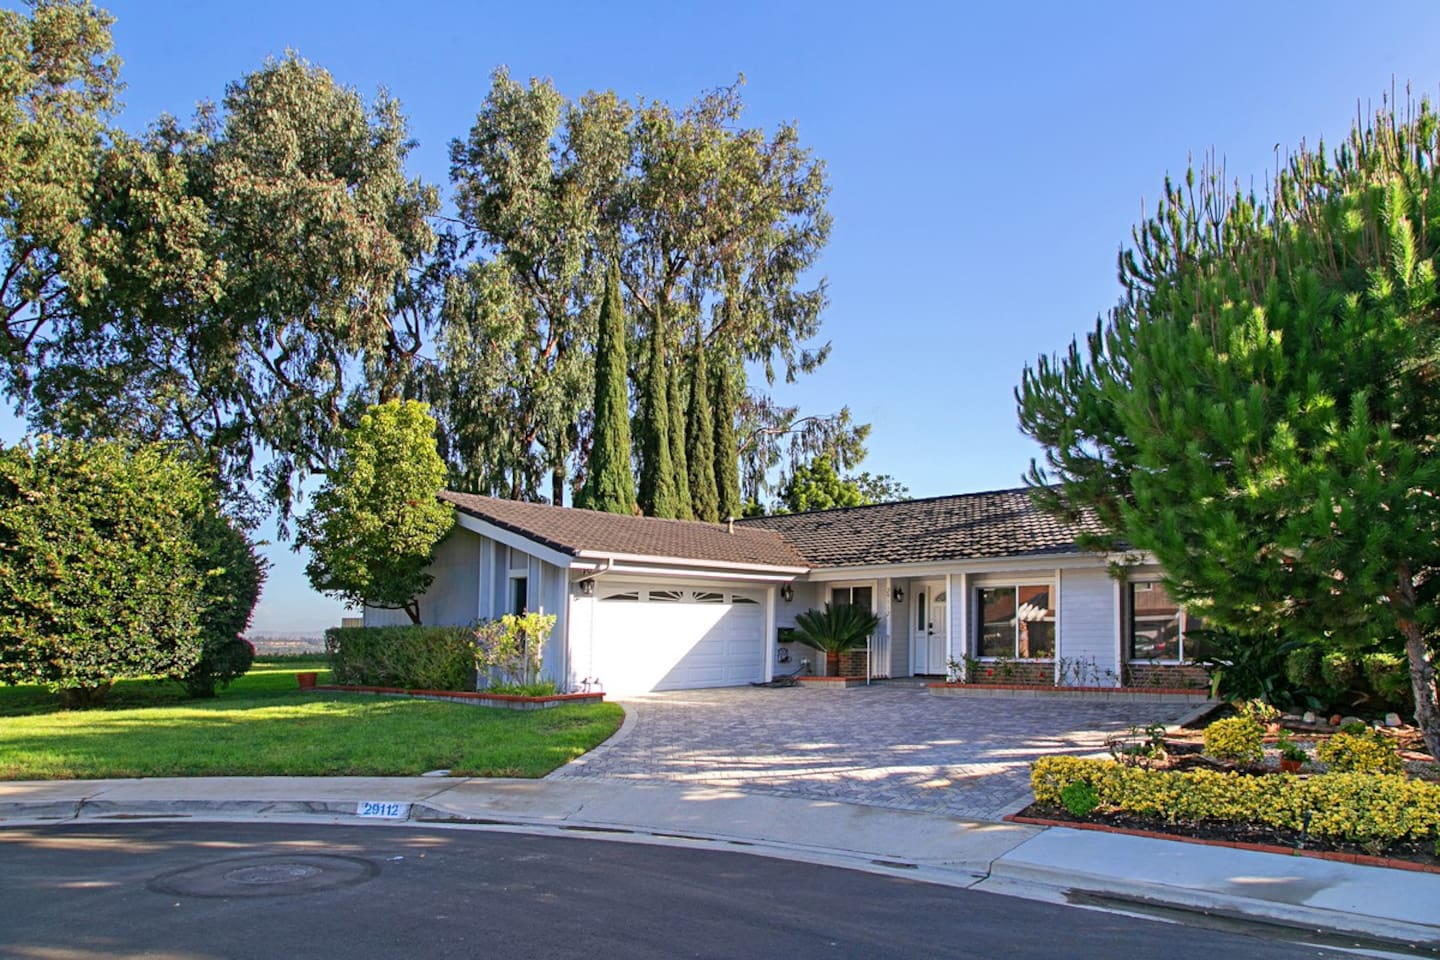 Beautiful Home located on a Cul de Sac in Laguna Niguel. Private corner lot with stunning city & mountain views. Minutes to the beach, shopping & dinning.